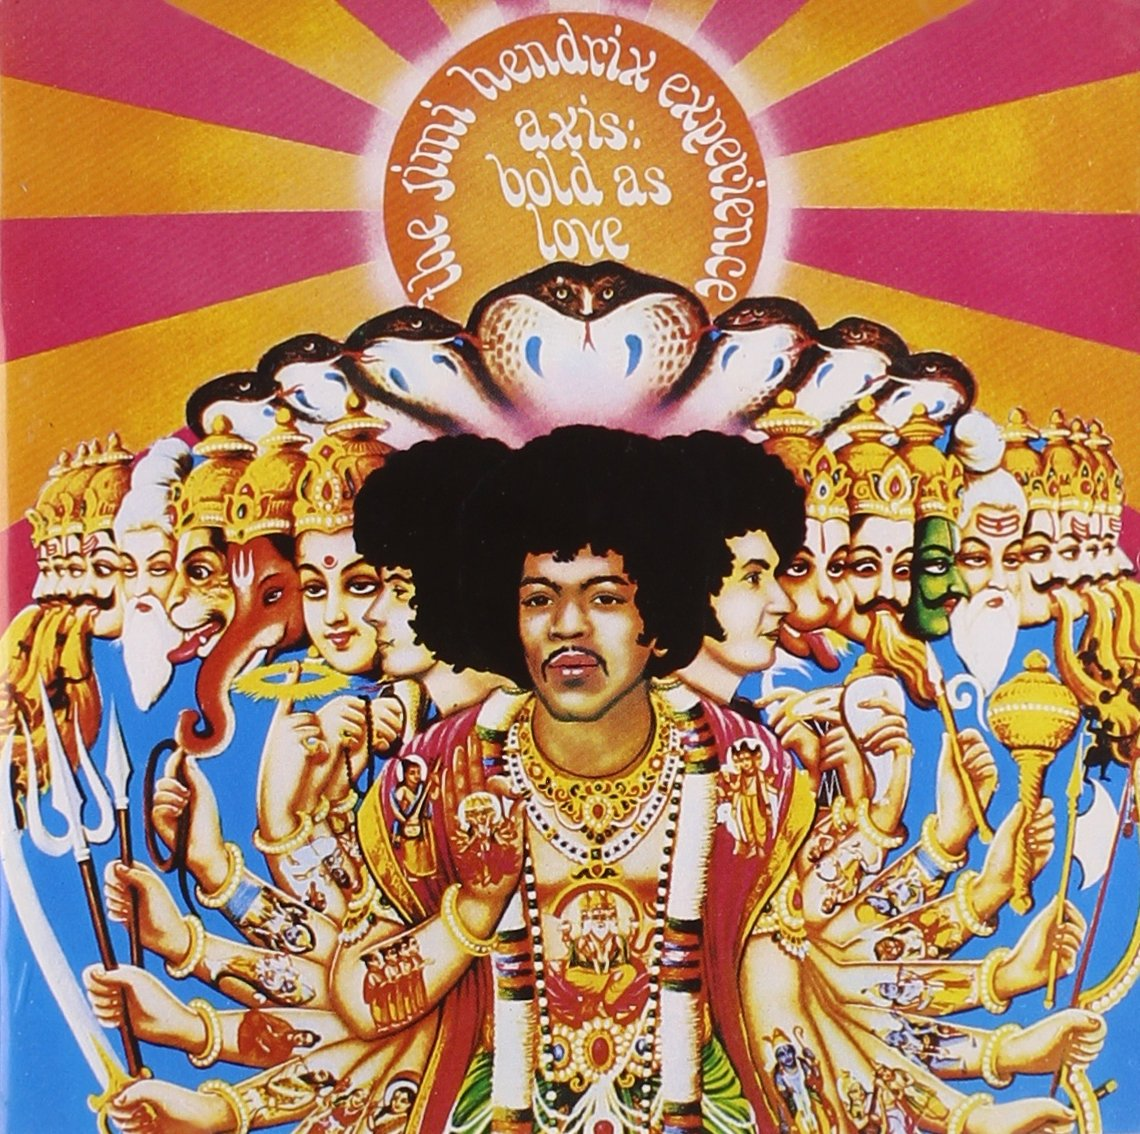 Jimi Hendrix Experience - Axis Bold As Love.